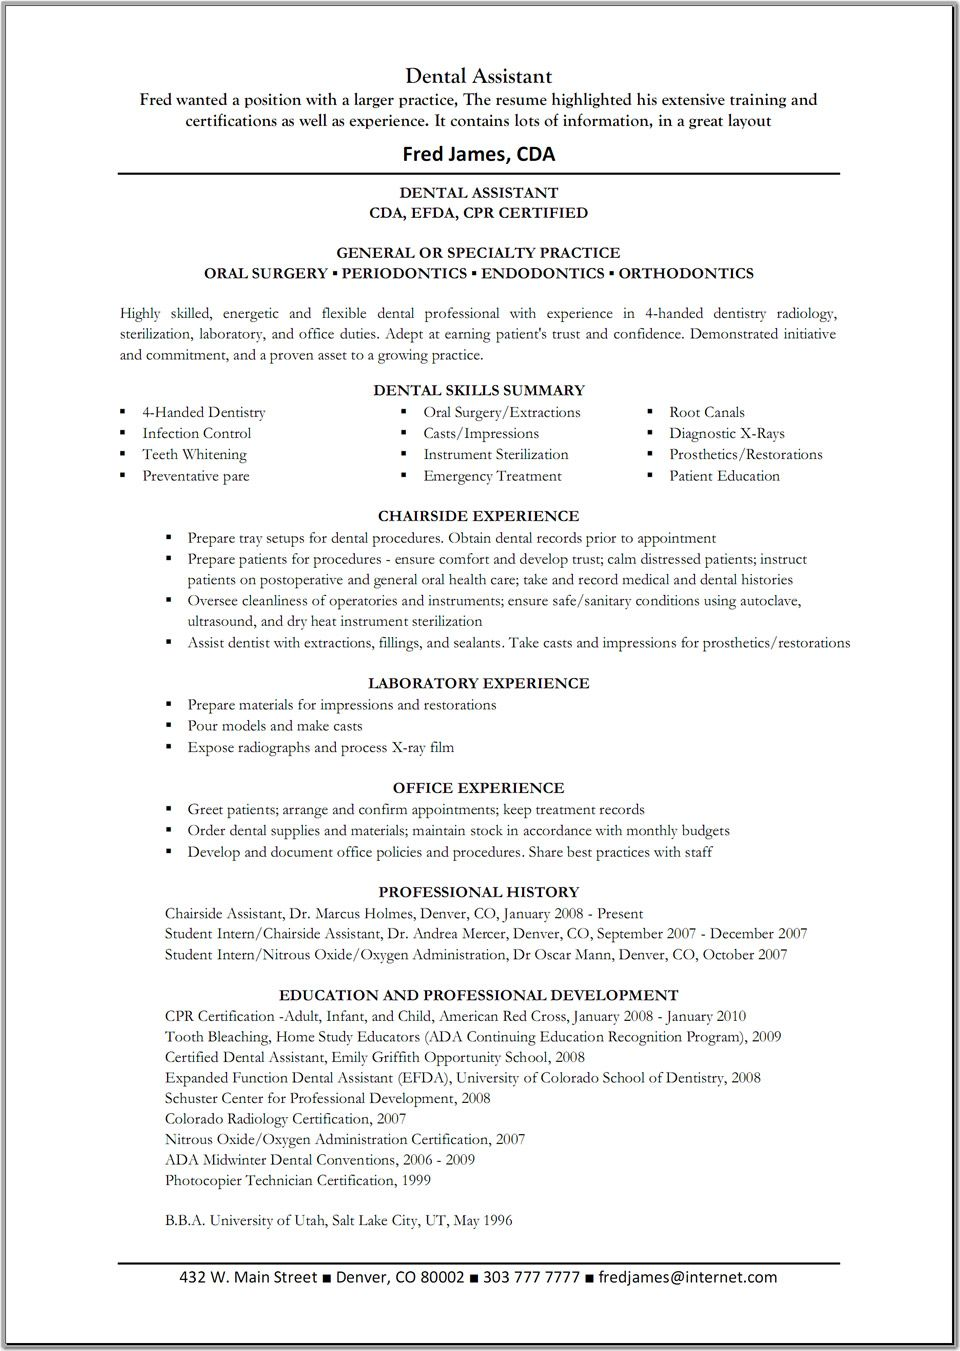 Dental Assistant Resume Sample Medical Assistant Resume Dental Hygienist Resume Dental Hygiene Resume